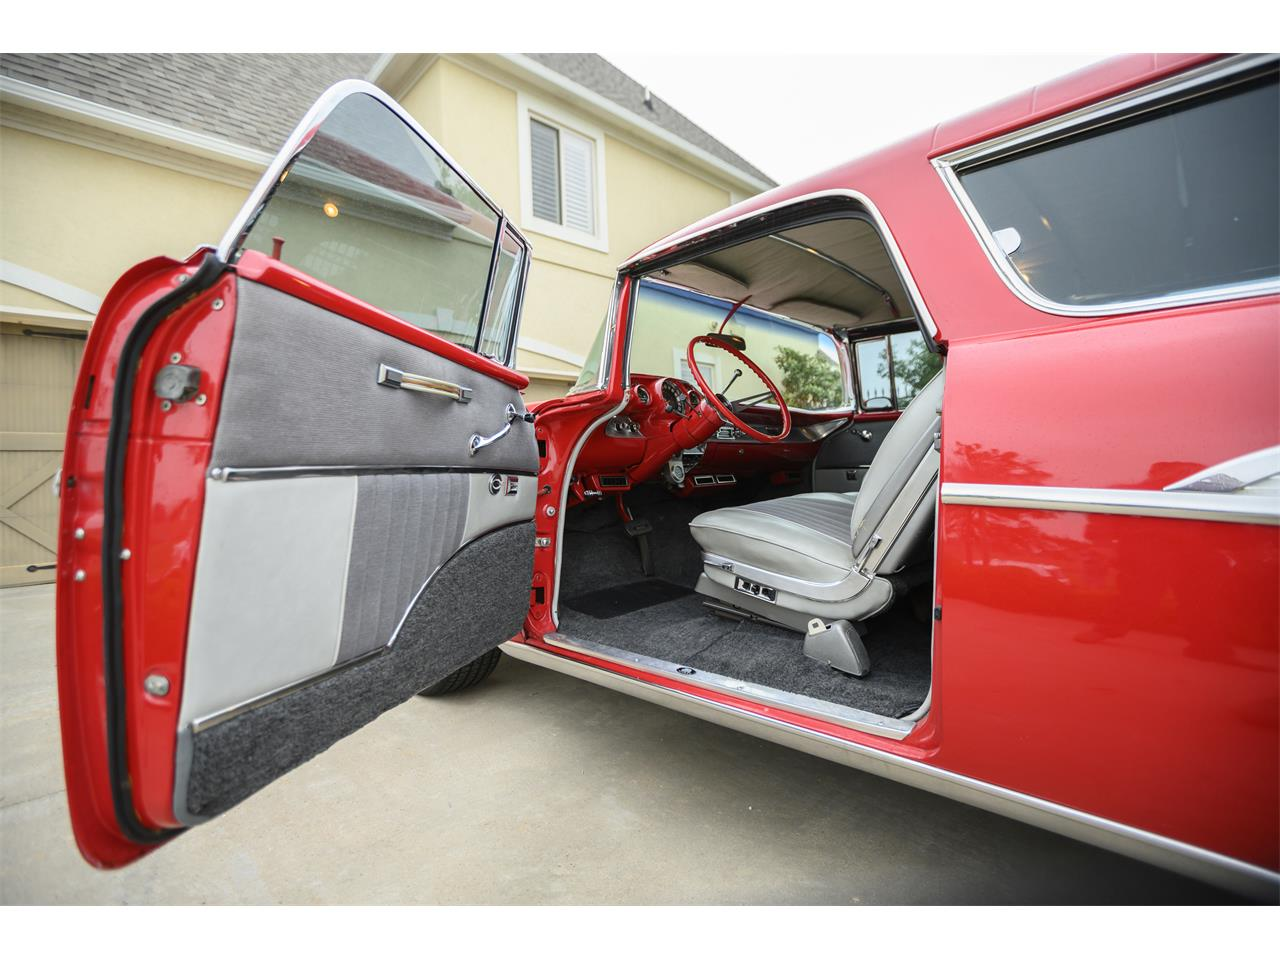 Large Picture of '57 Bel Air Nomad located in Oklahoma - $67,400.00 Offered by a Private Seller - PZTB